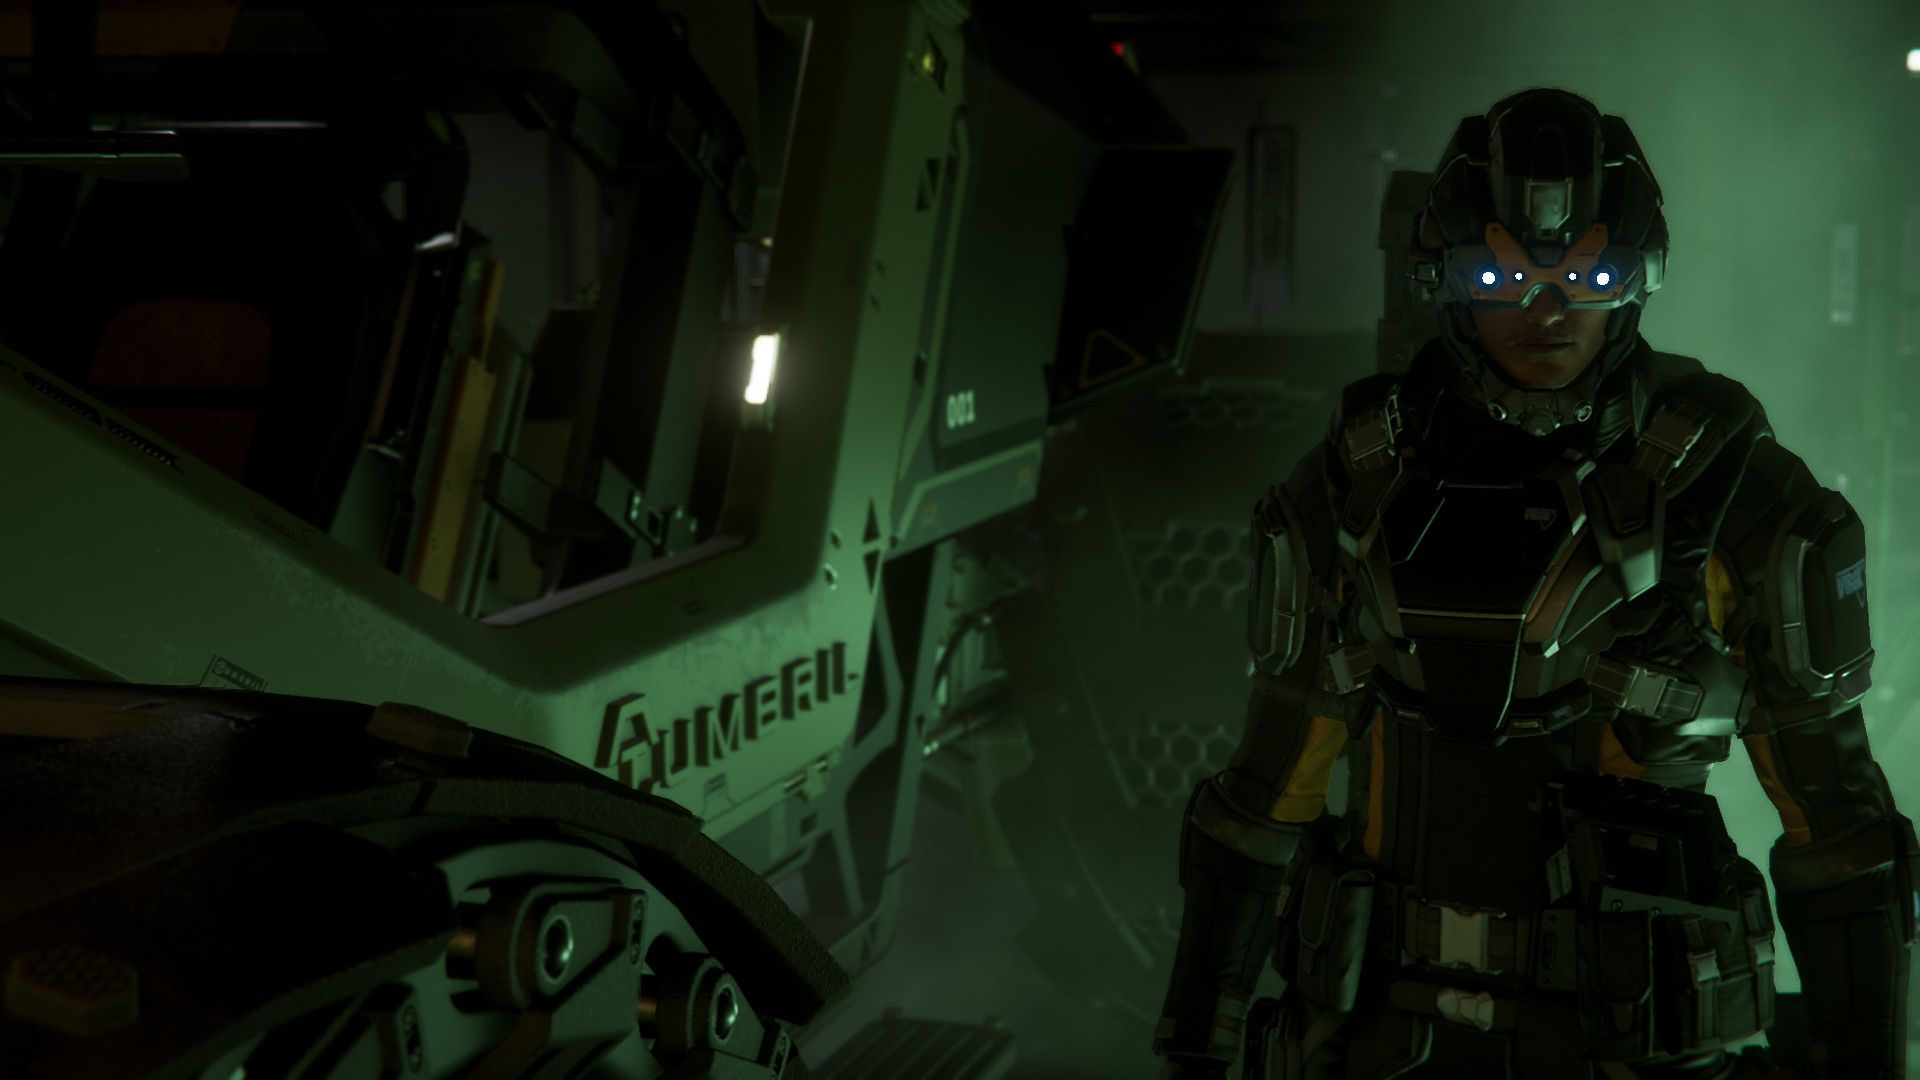 Pin by Malcolm Griffiths on Star Citizen Star citizen